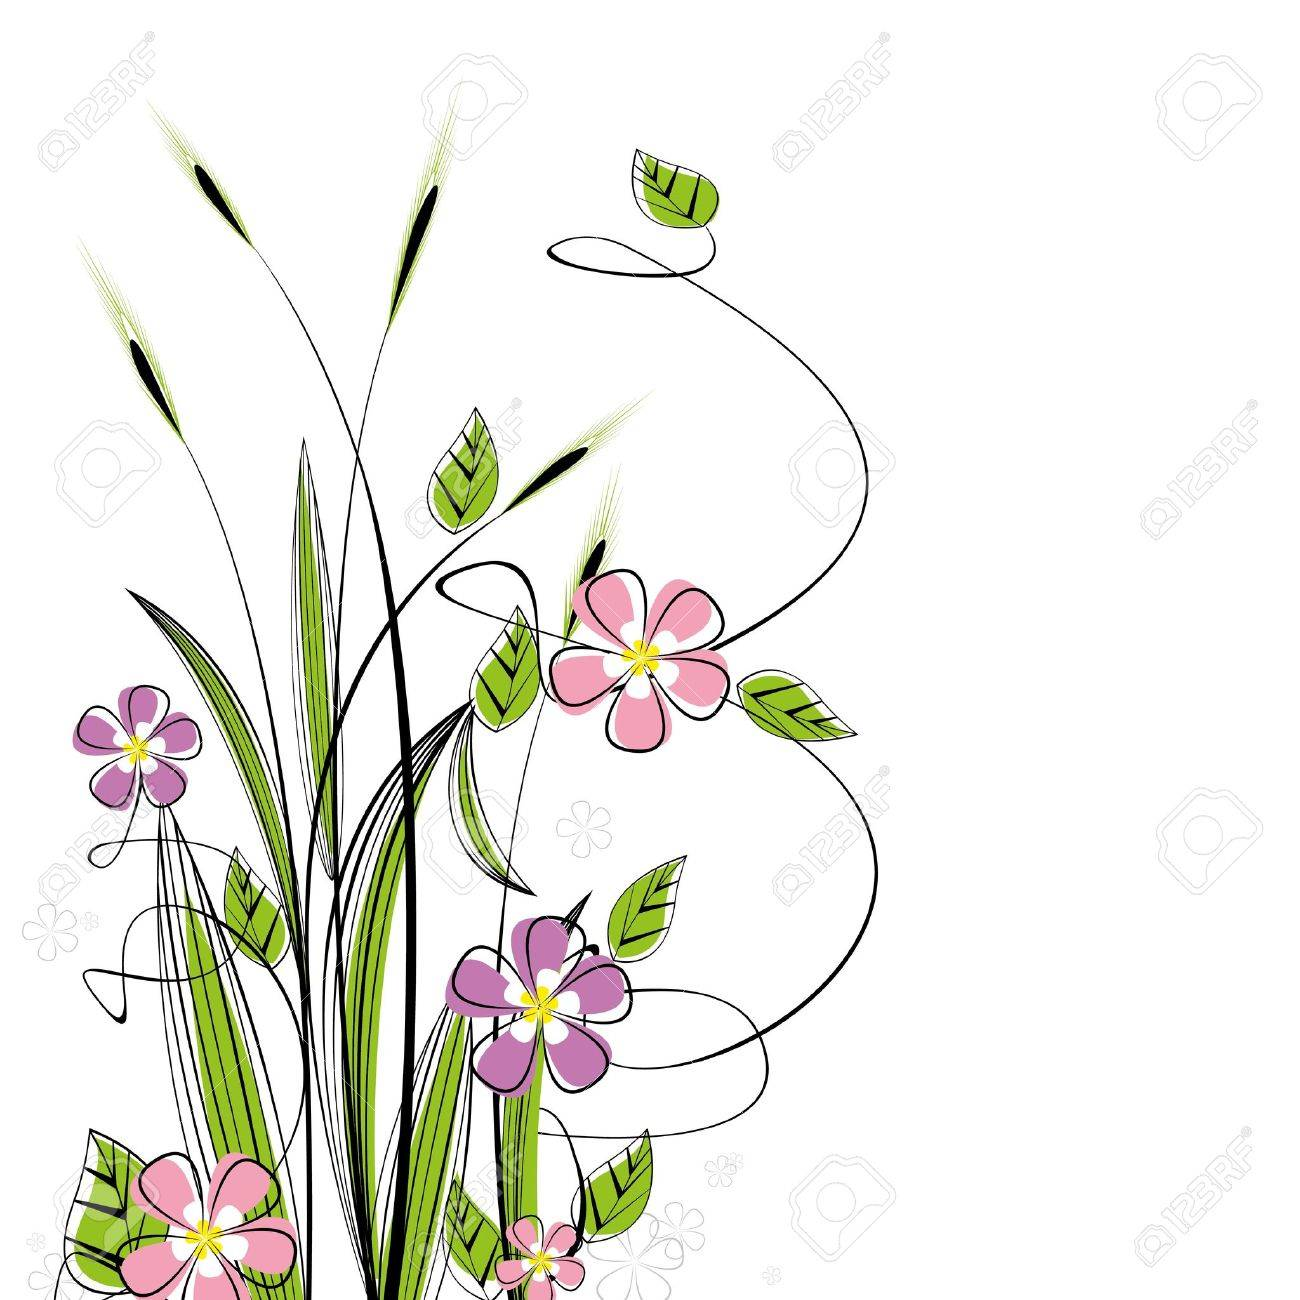 grass with flowers on white background - 13086638